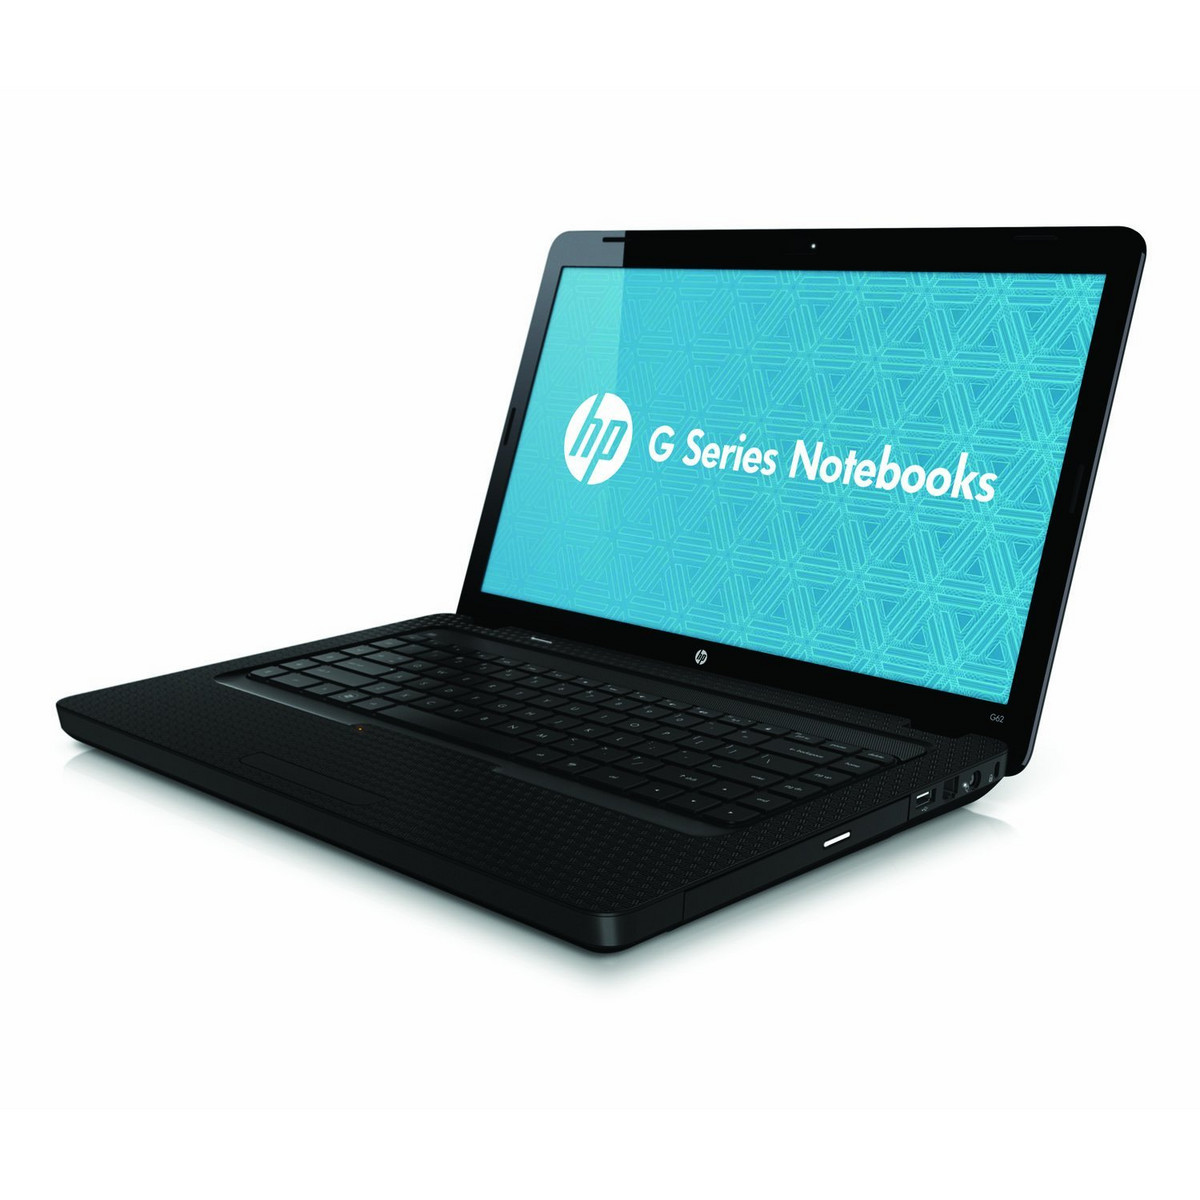 HP G62-b35sg - Notebookcheck.info